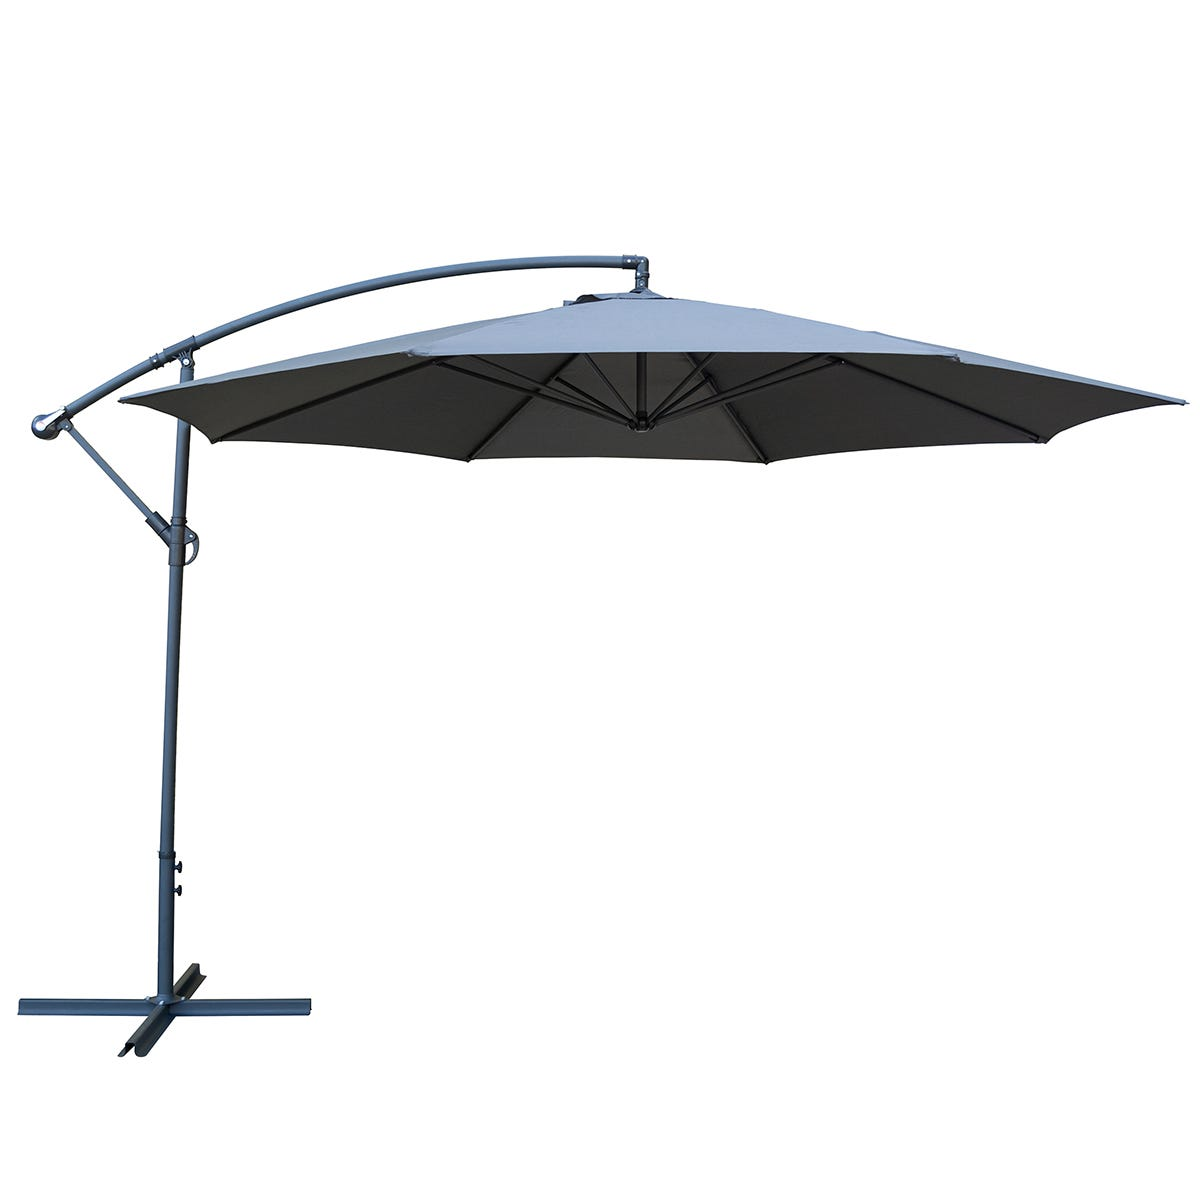 Rowlinson Metal 3.5m Overhang Parasol (base not included) - Grey